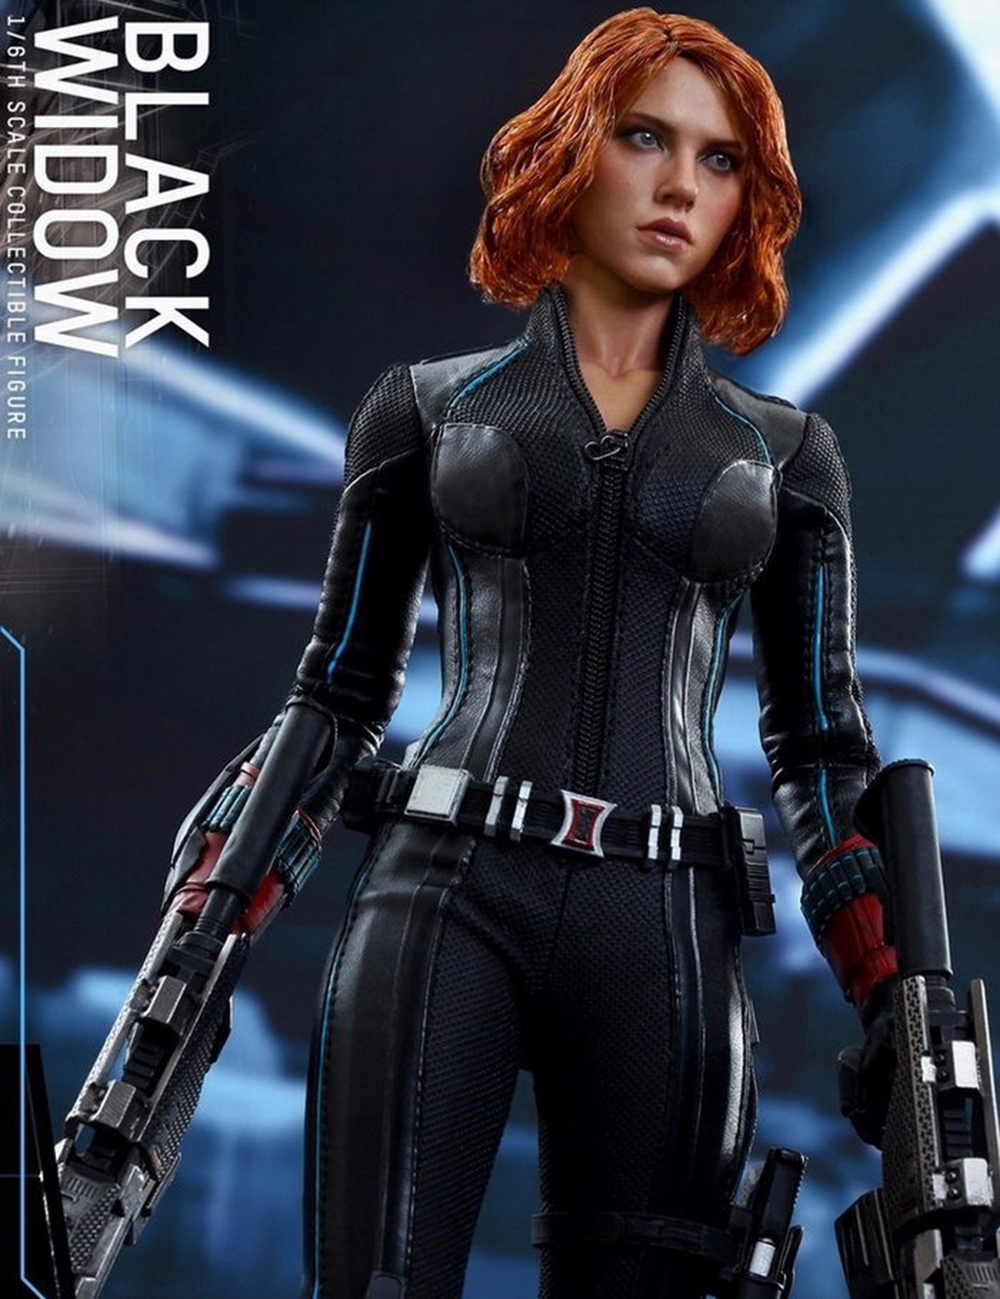 MMS288 1/6 Black Widow 4.0 Action Figure Captain America Avengers HT Collection Figure Models 1